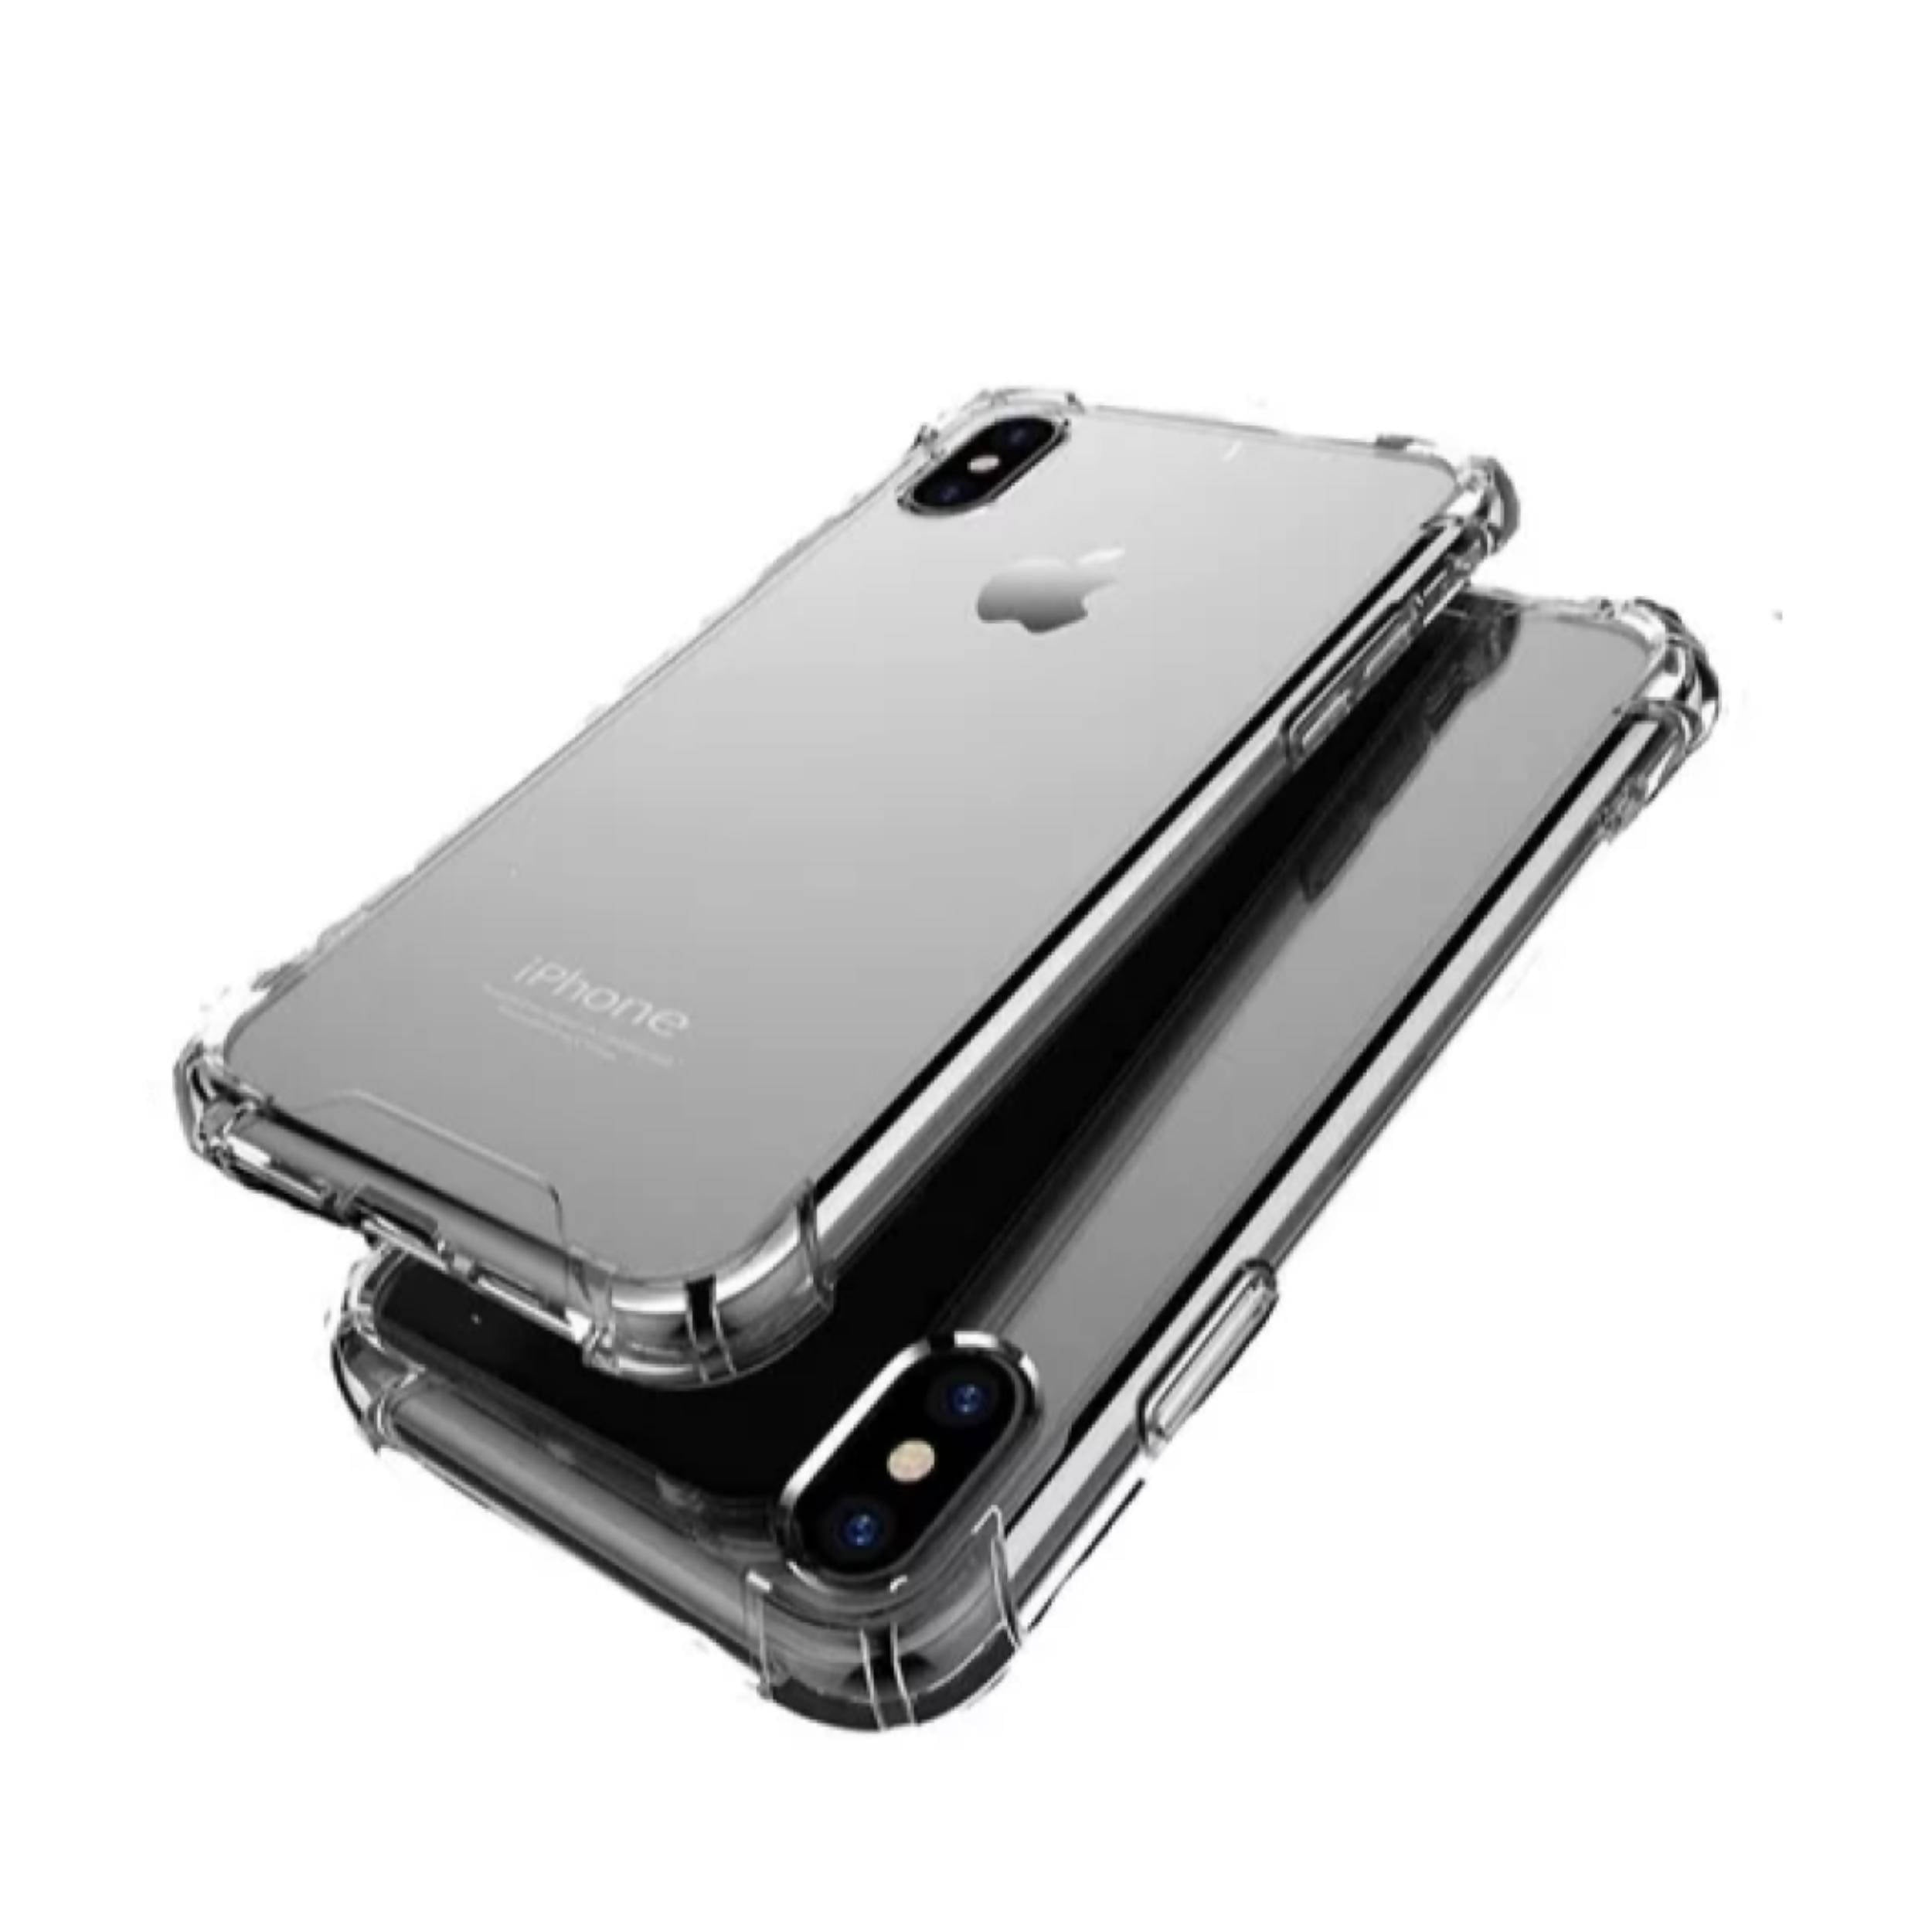 Mayoreo Funda Rigida Acrigel Iphone5se 6 7 8 X Galaxy Huawei - APE-Plazas